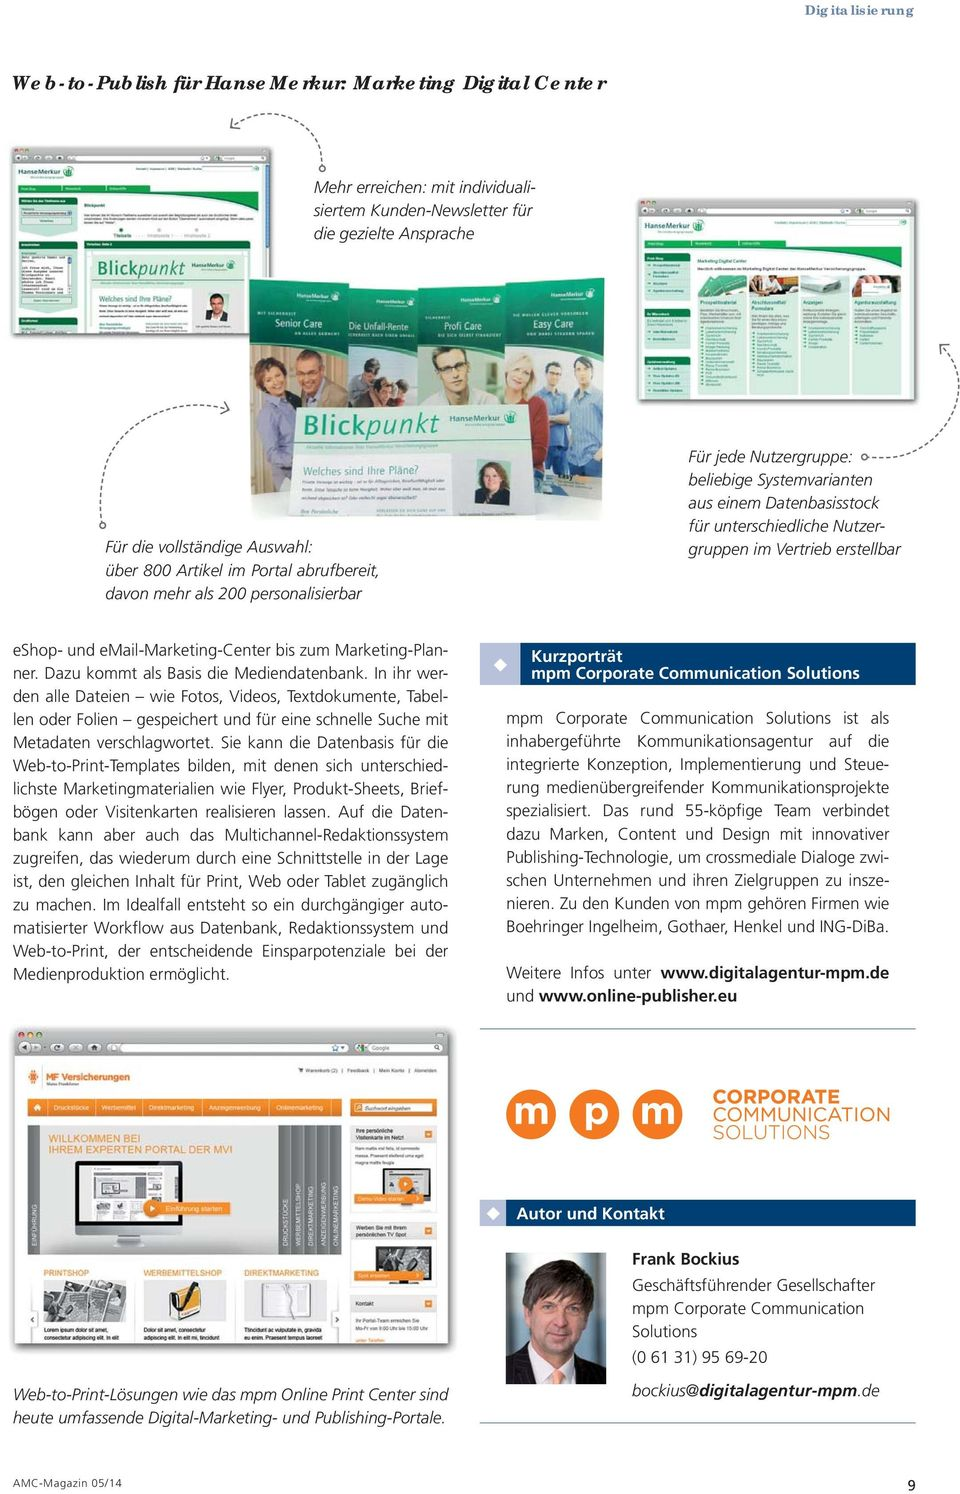 eshop- und email-marketing-center bis zum Marketing-Planner. Dazu kommt als Basis die Mediendatenbank.